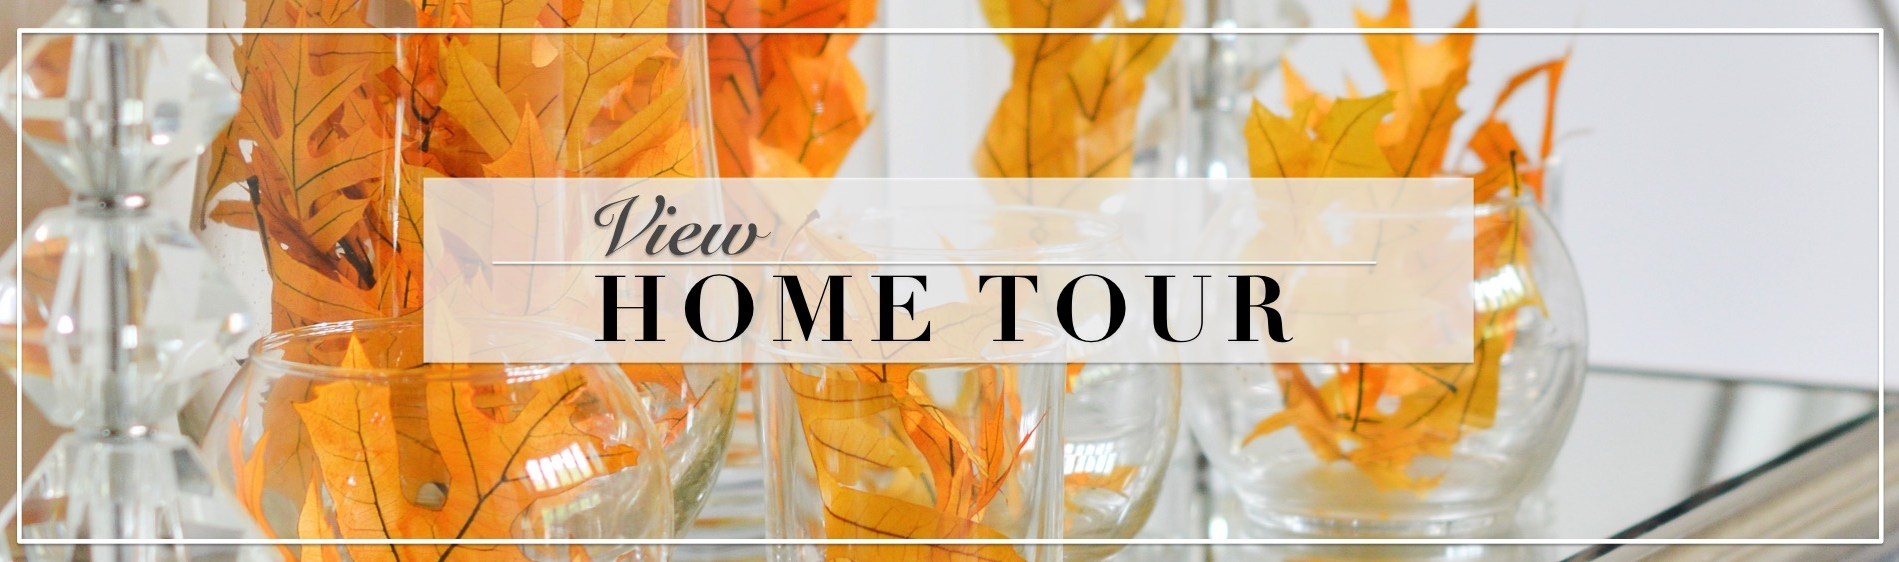 Home Tour Blog Slider- Fall